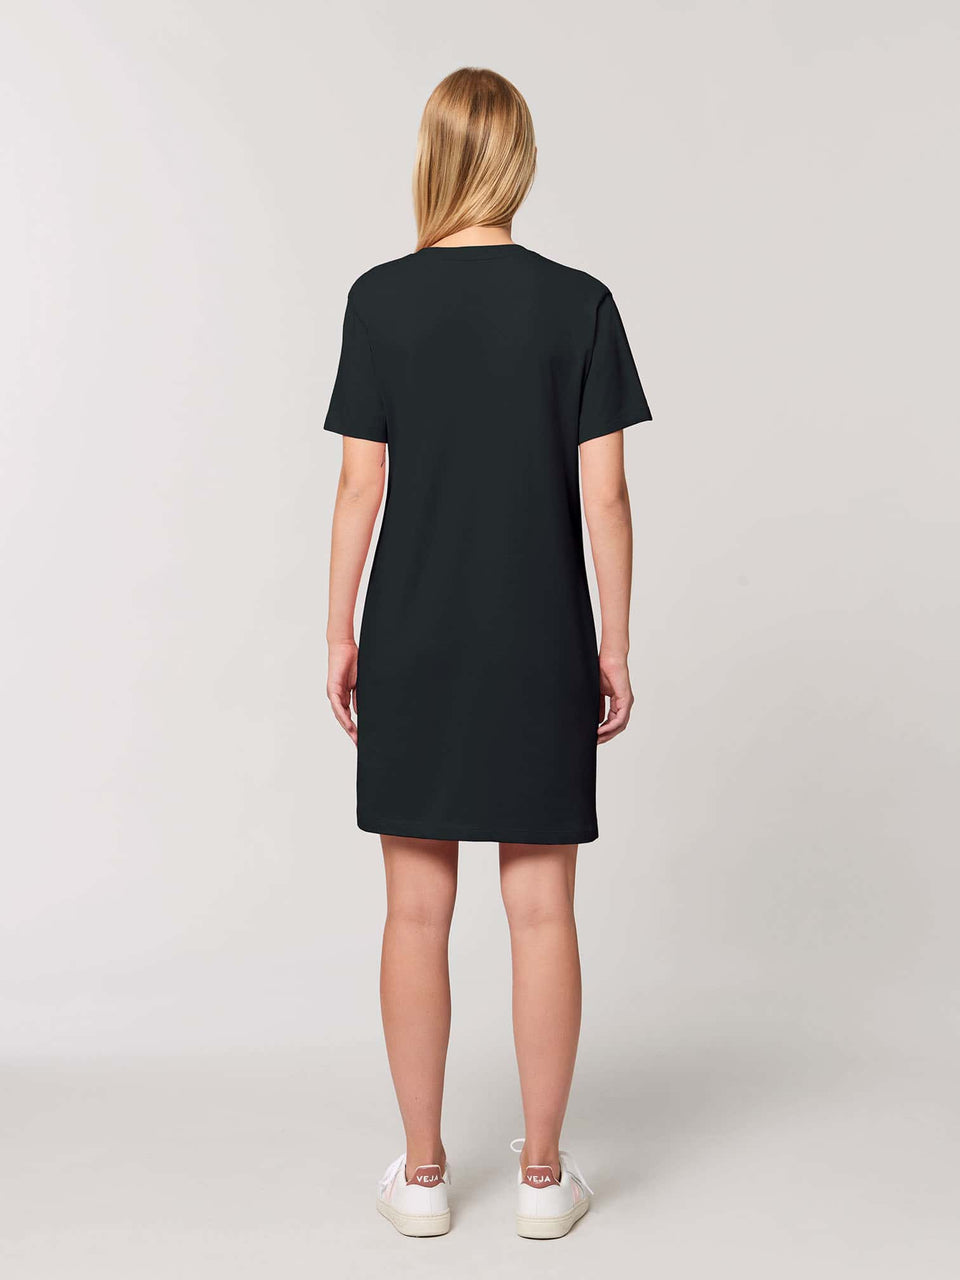 Bufo Alvarius Made To Order Women t-shirt Dress - Black